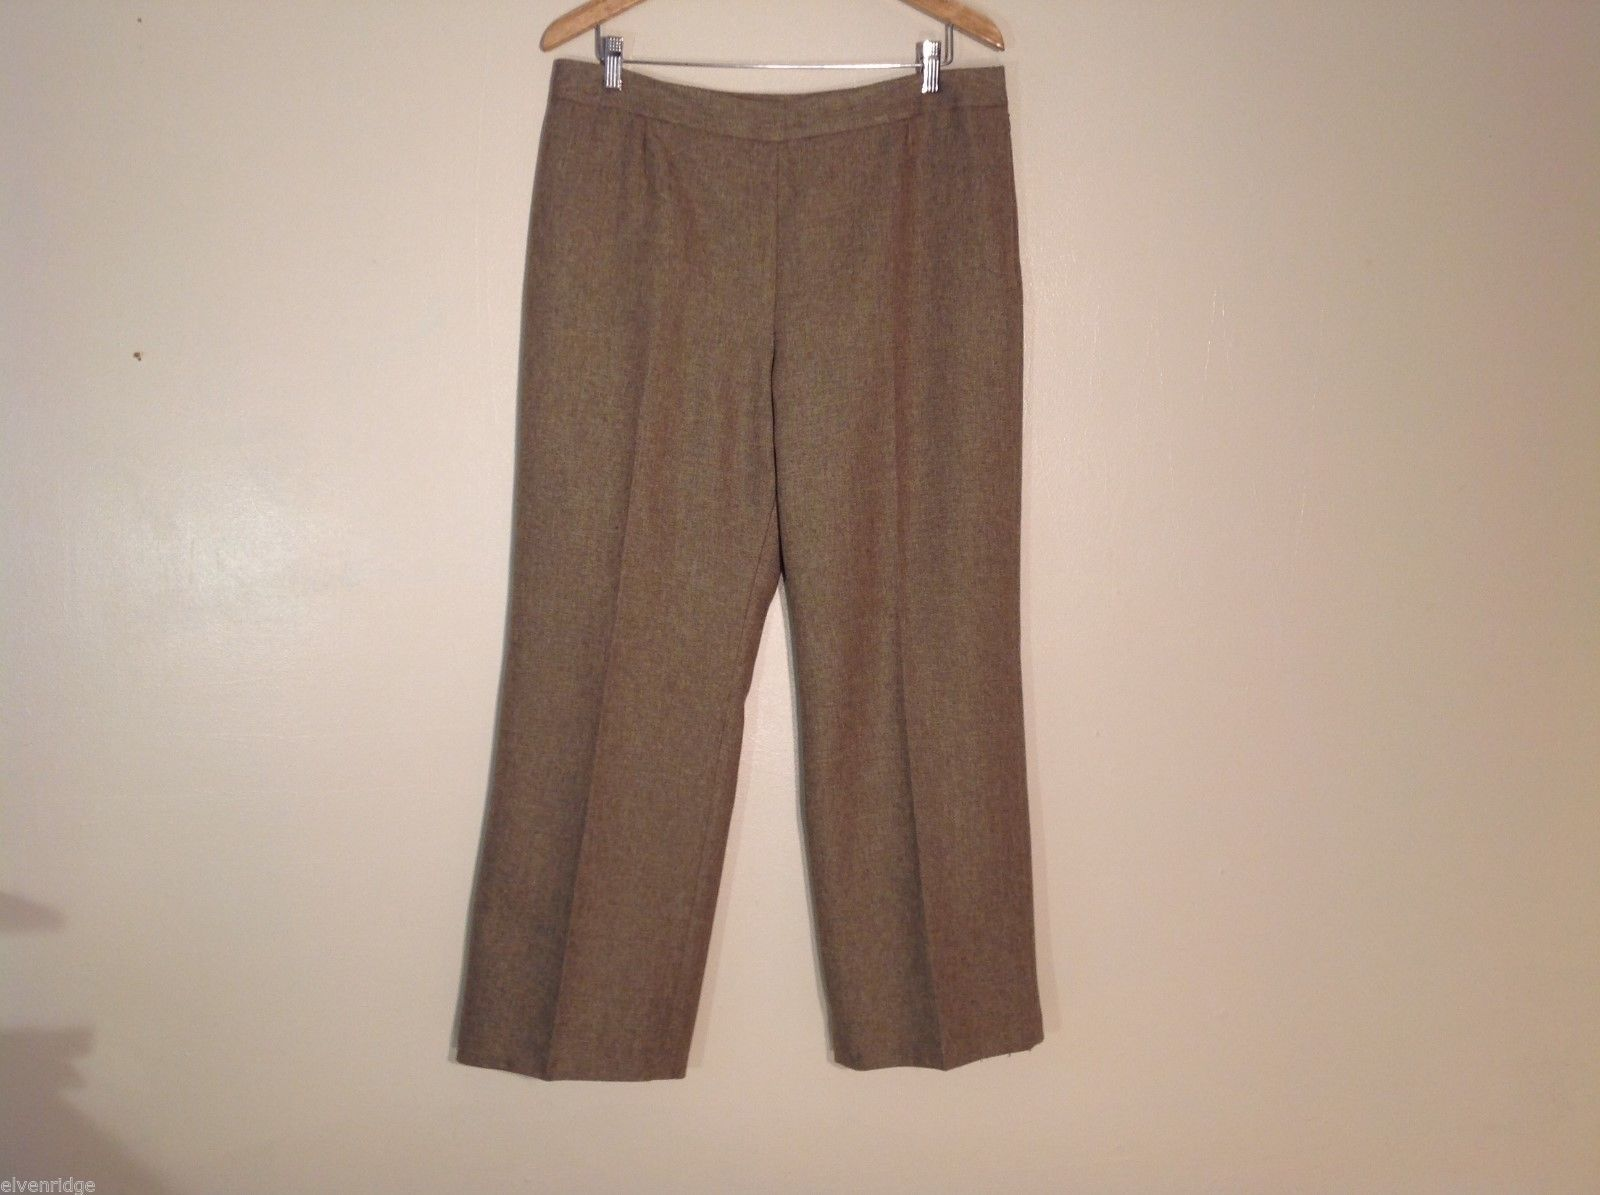 Womens Suit Studio Brown Dress Pants, Size 14P